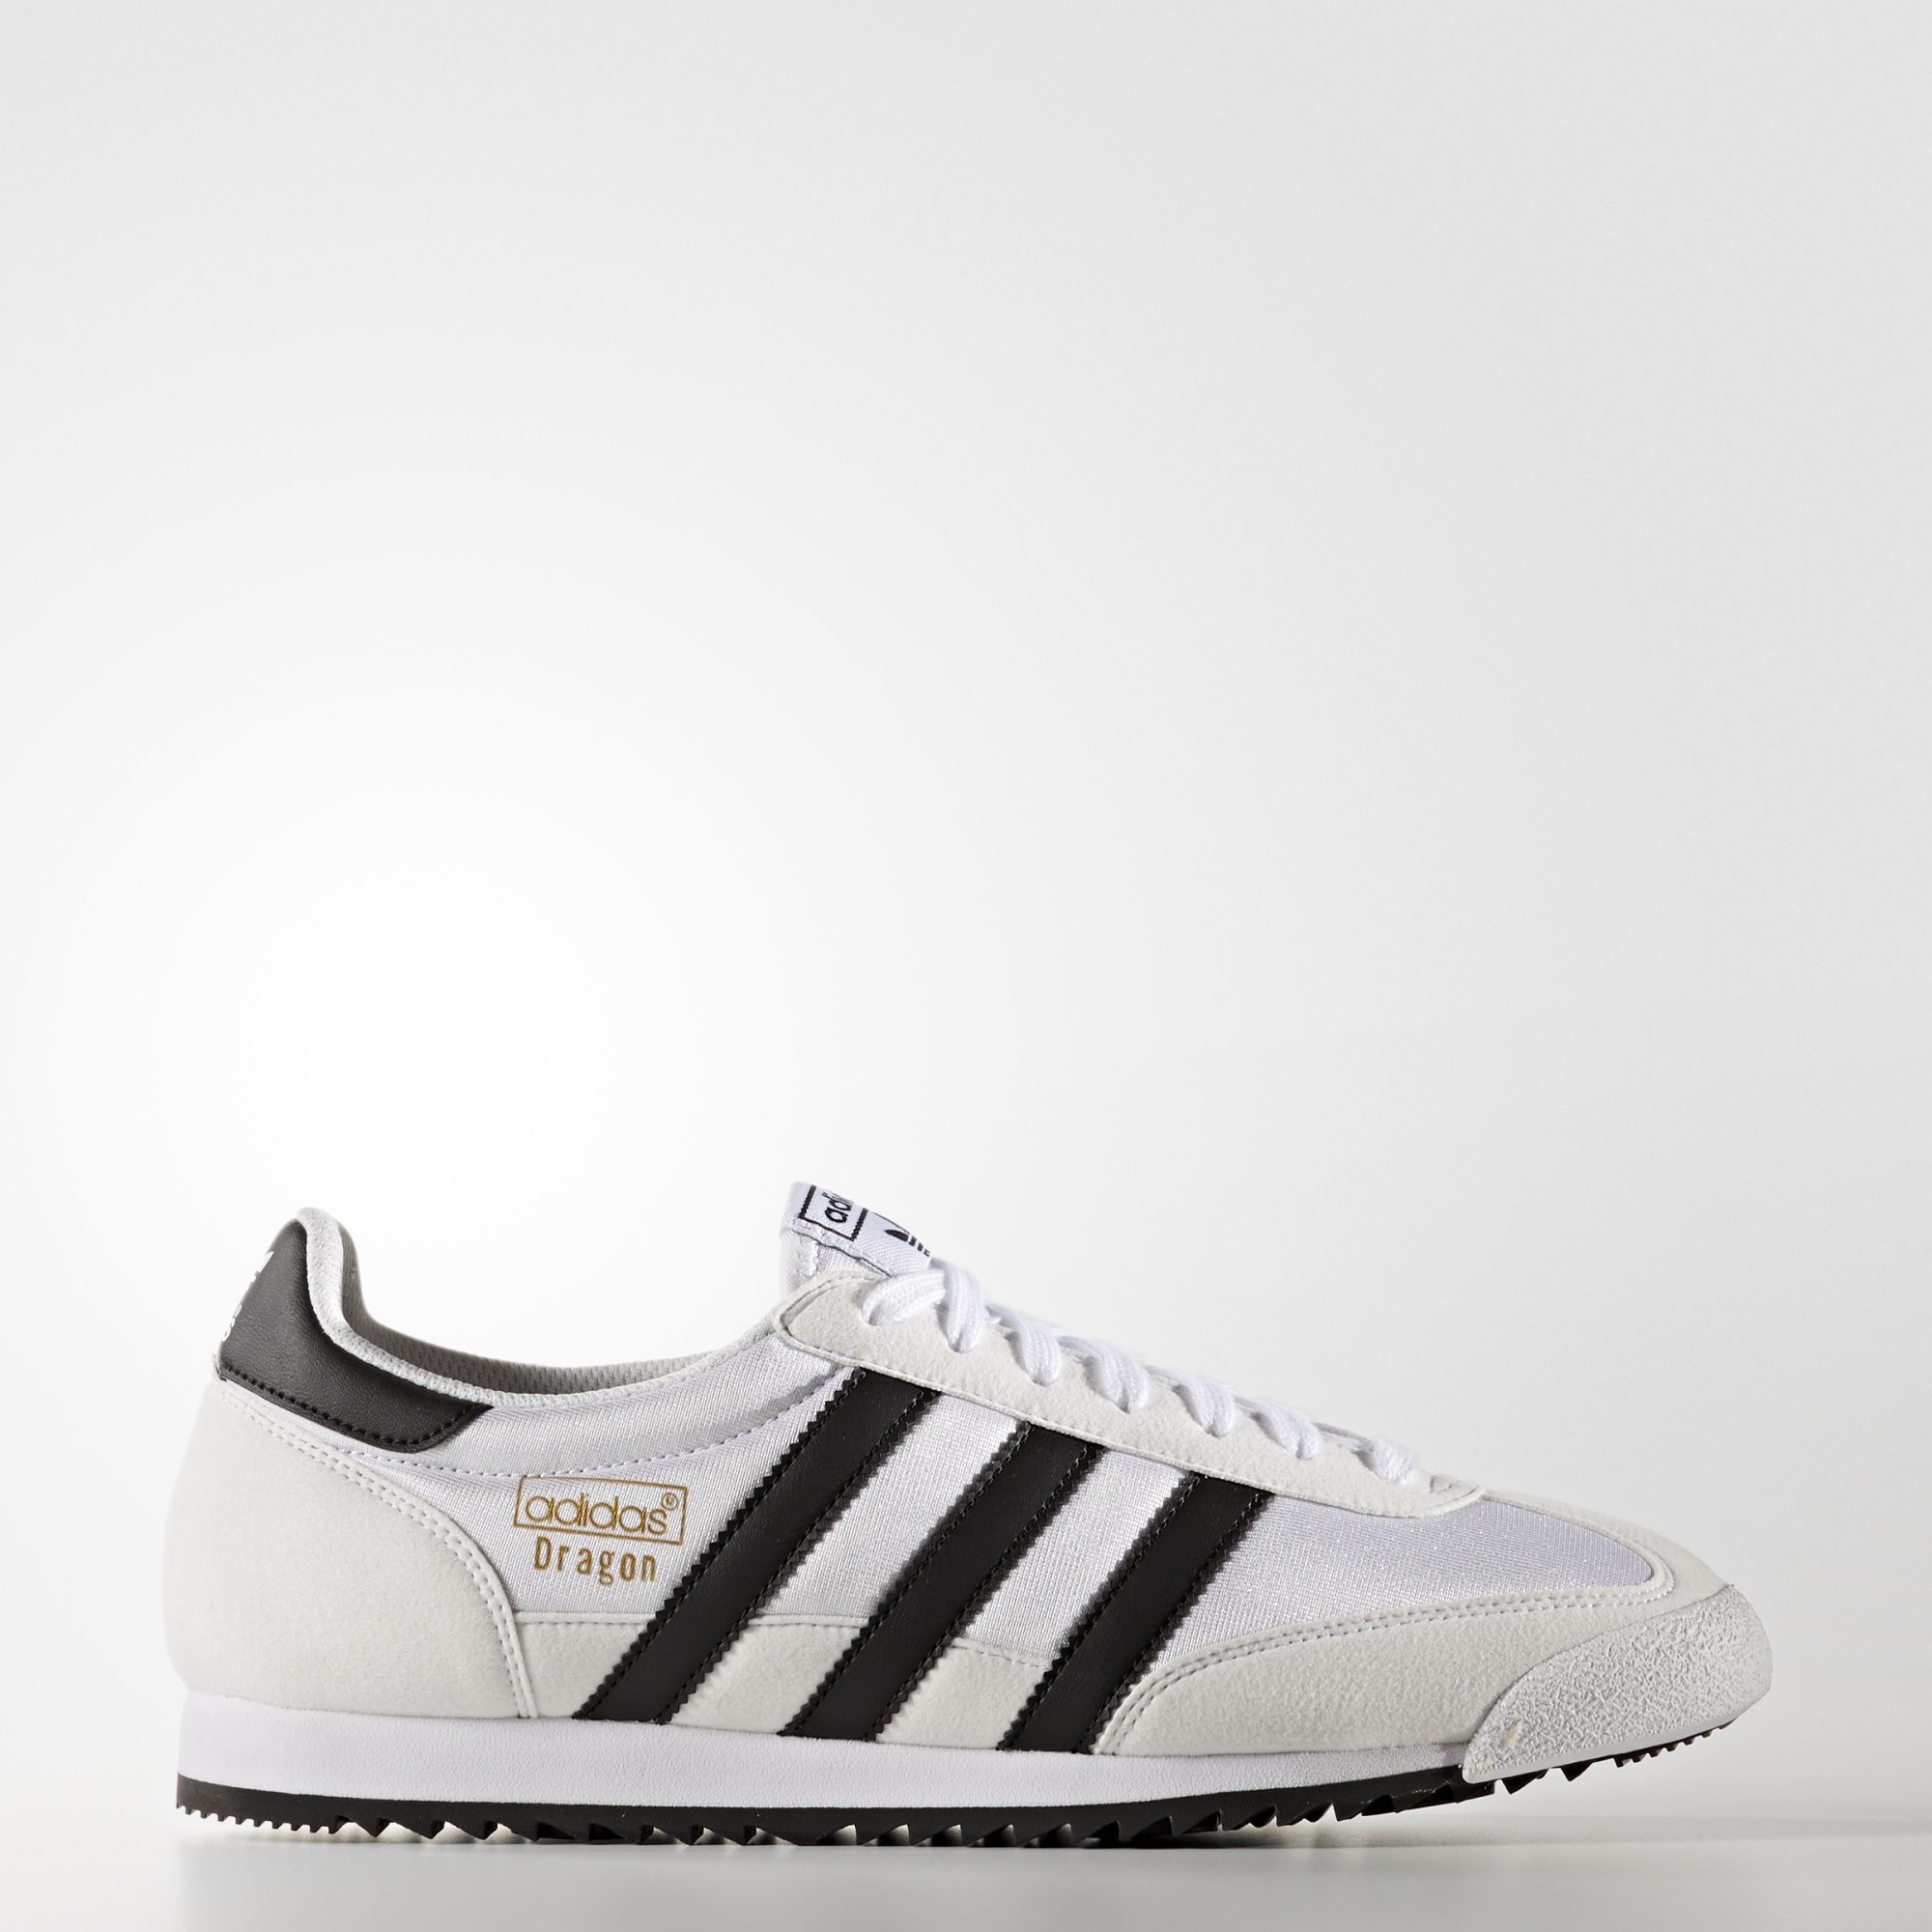 Details about Adidas Originals Dragon Leather Shoes Sneakers Trainers Classic White Black